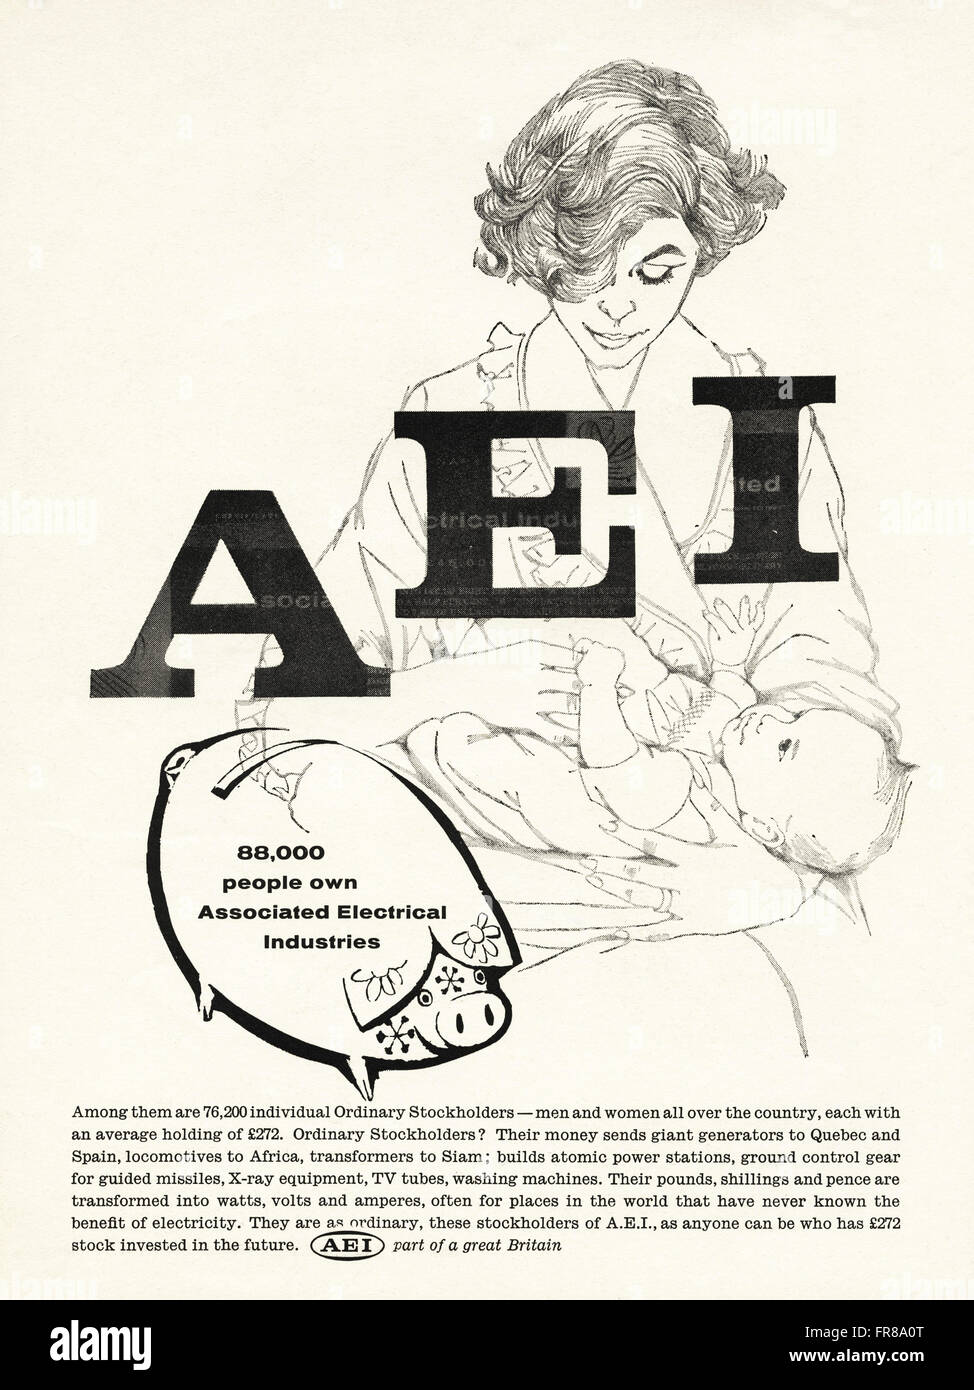 Original vintage advert from 1950s. Advertisement dated 1959 advertising AEI ASSOCIATED ELECTRICAL INDUSTRIES. - Stock Image